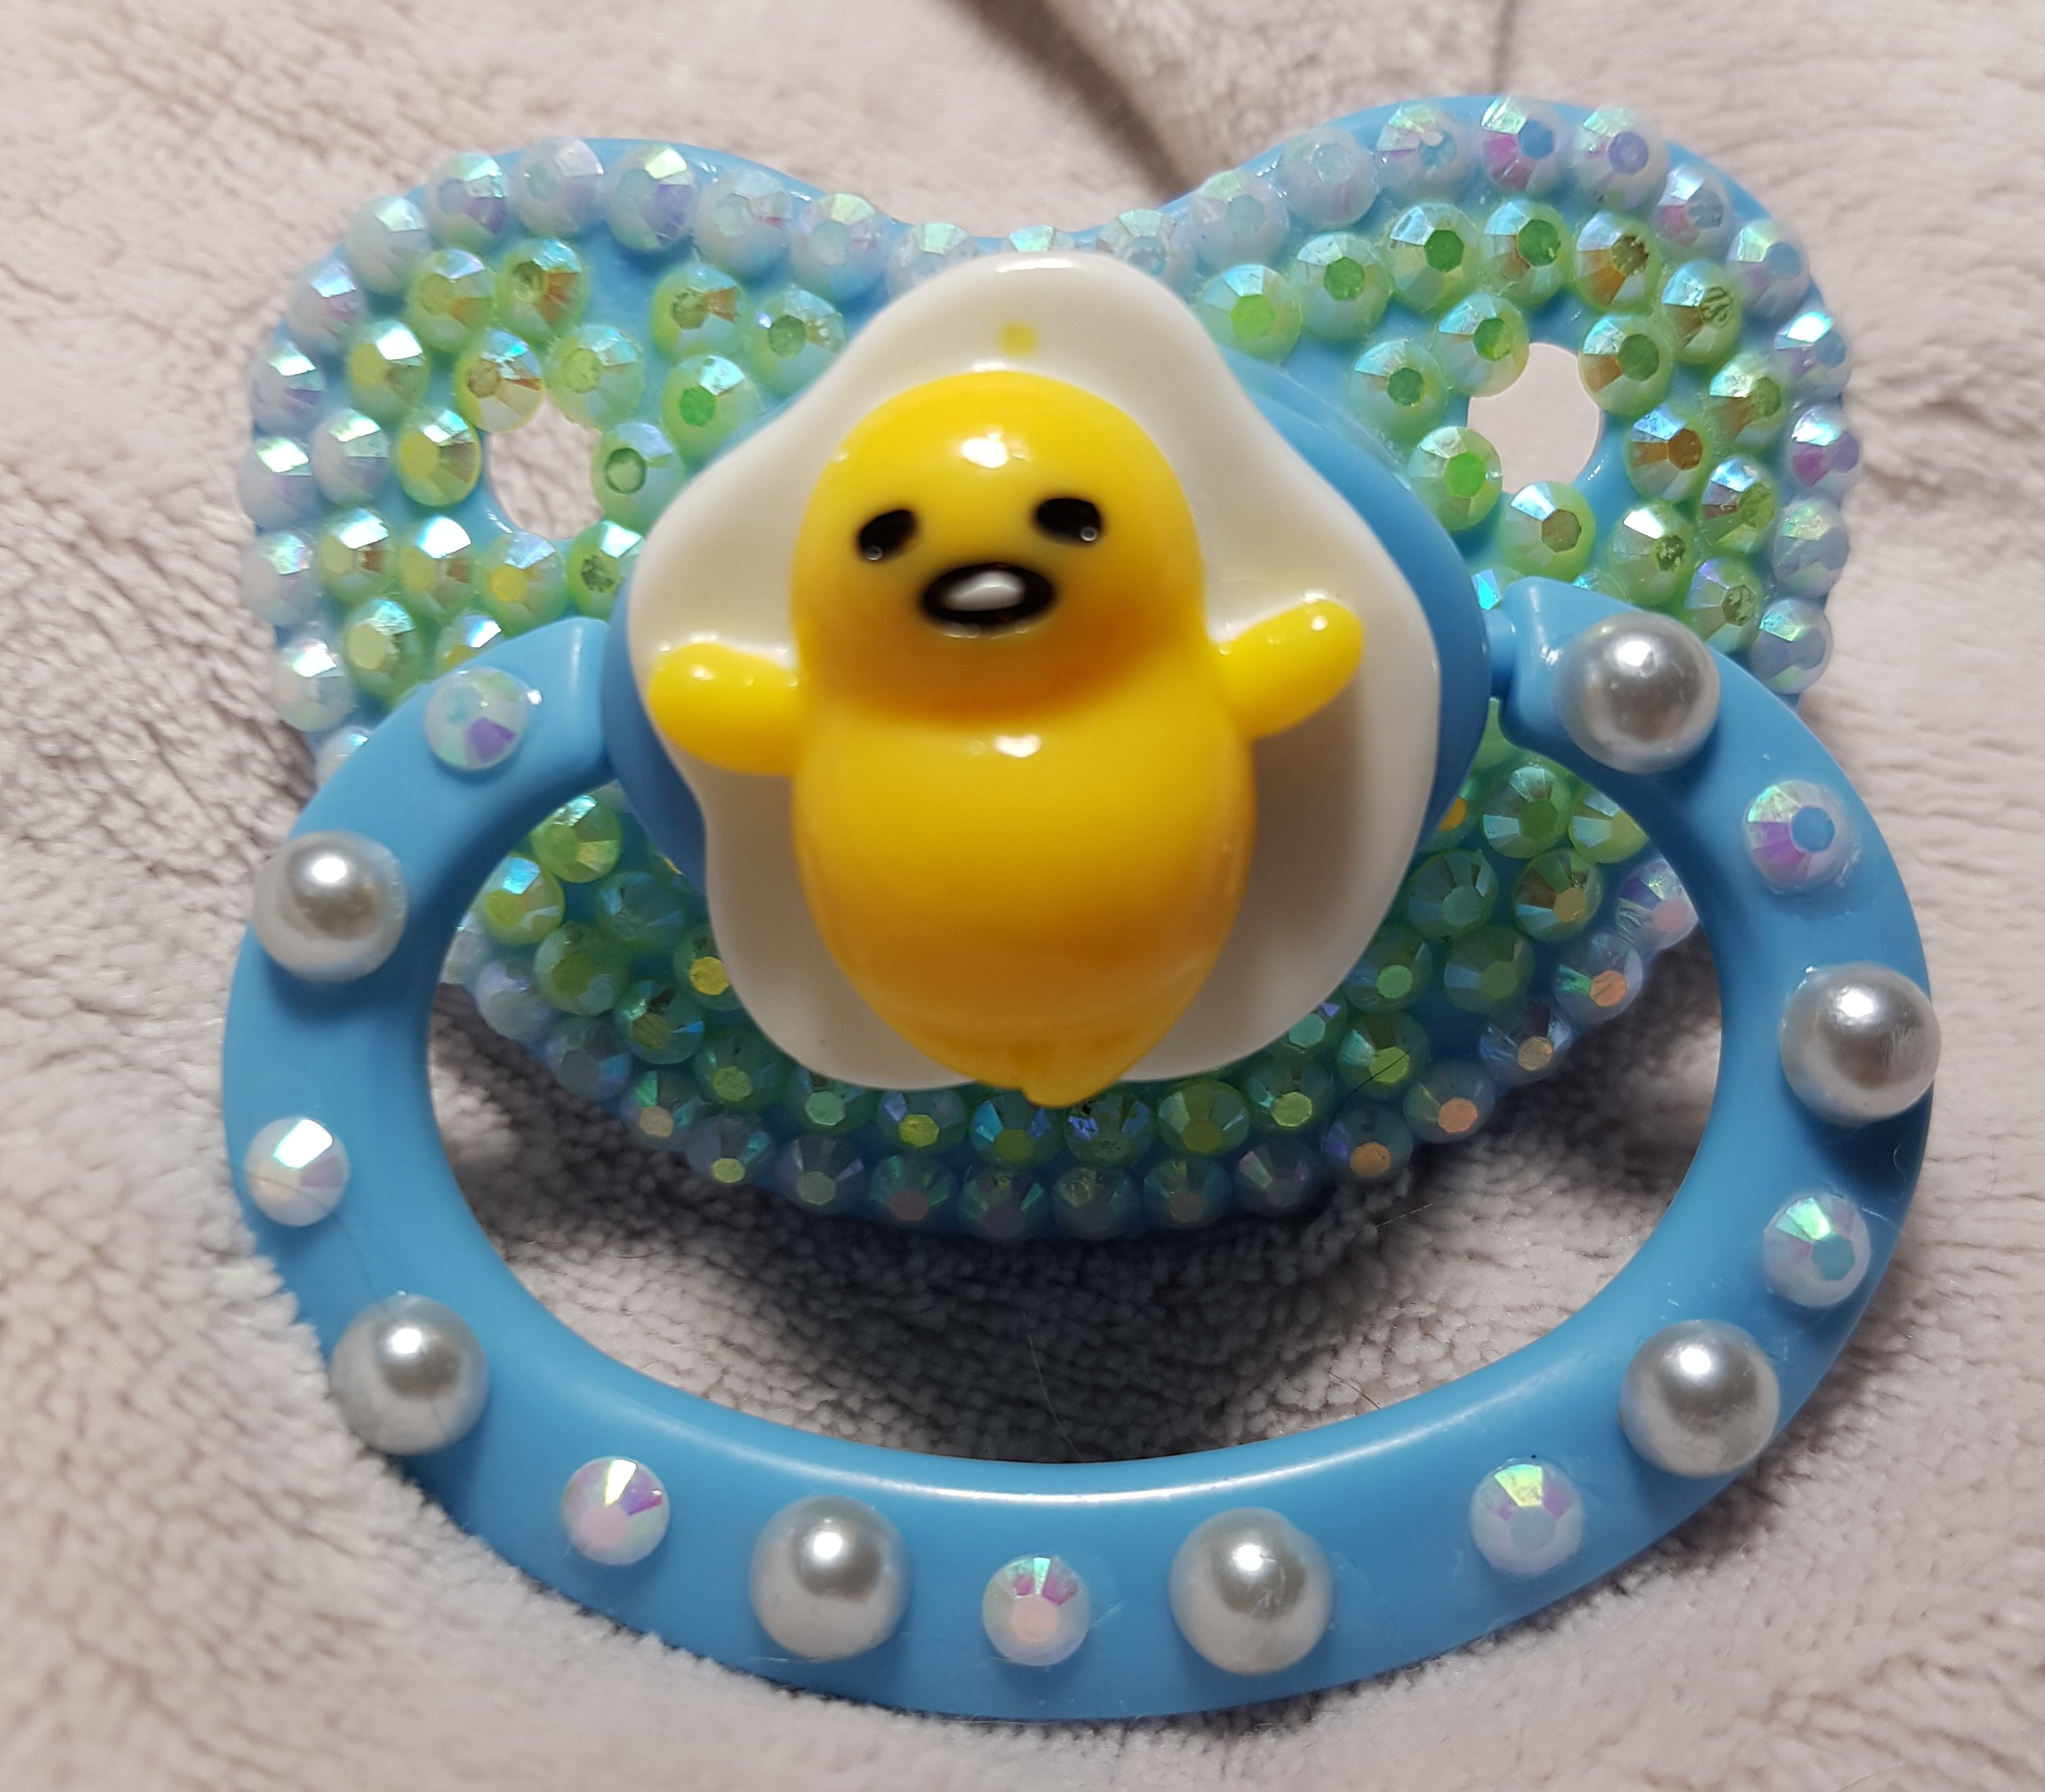 Blue Gudatama Pacifier Sold By Luvdolly Boutique On Storenvy